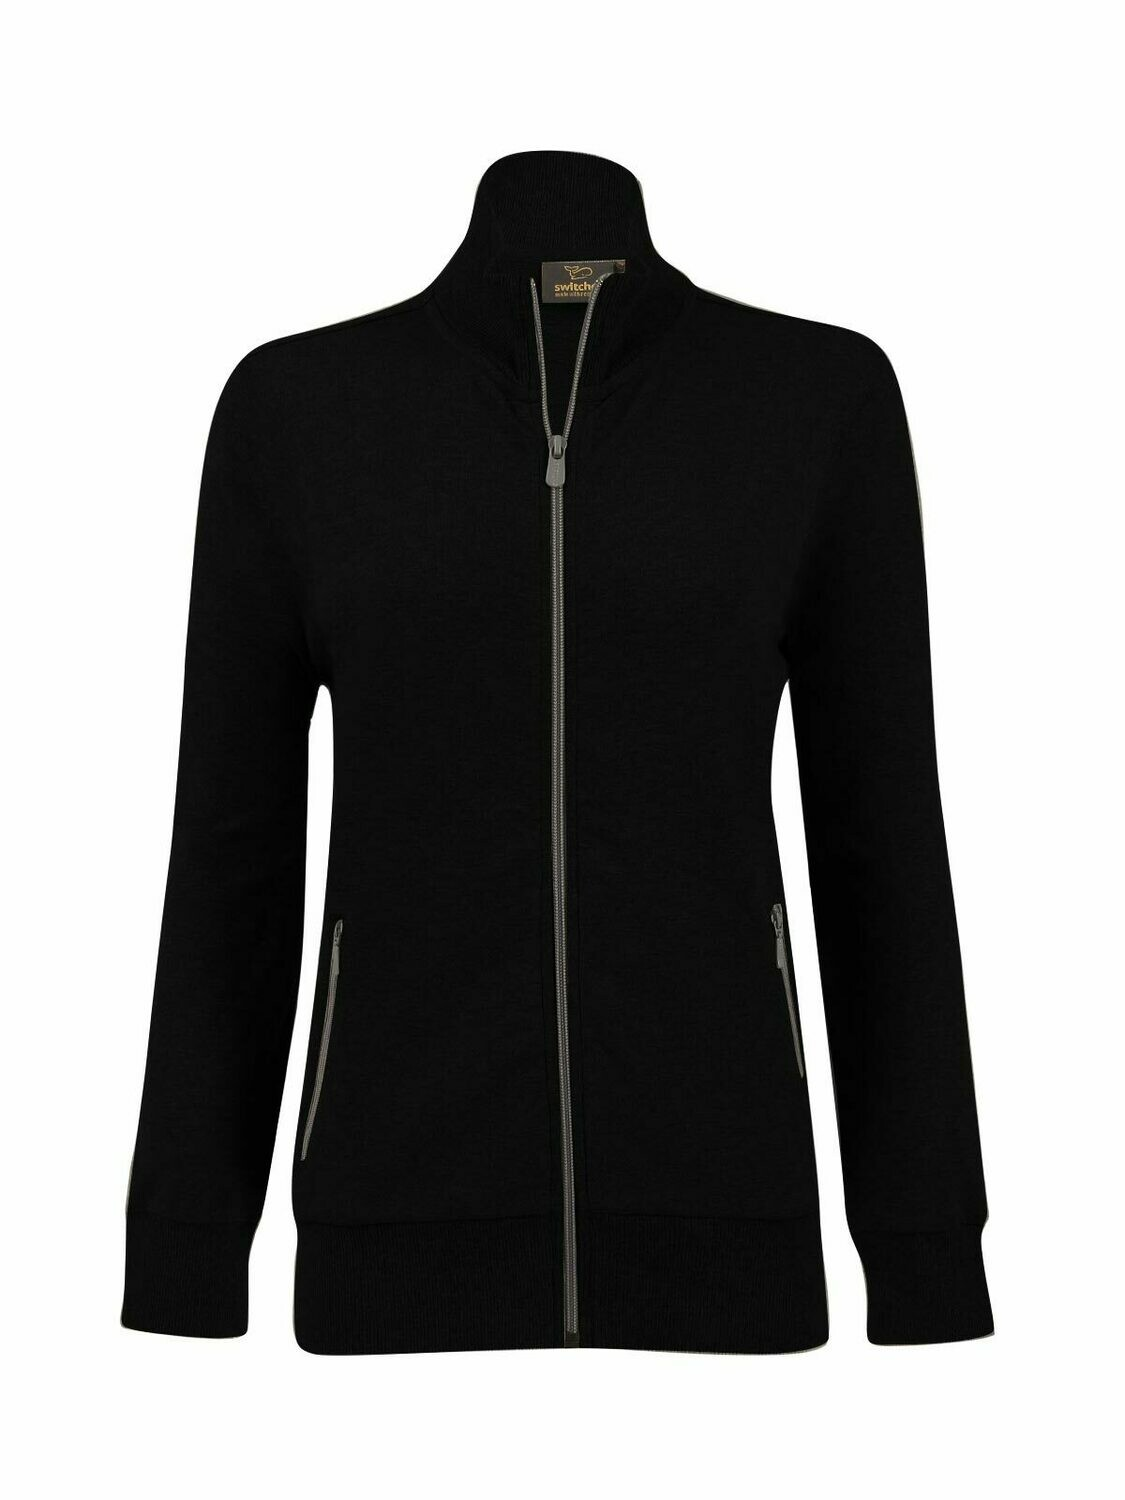 Switcher Damen Sweatjacke Mia